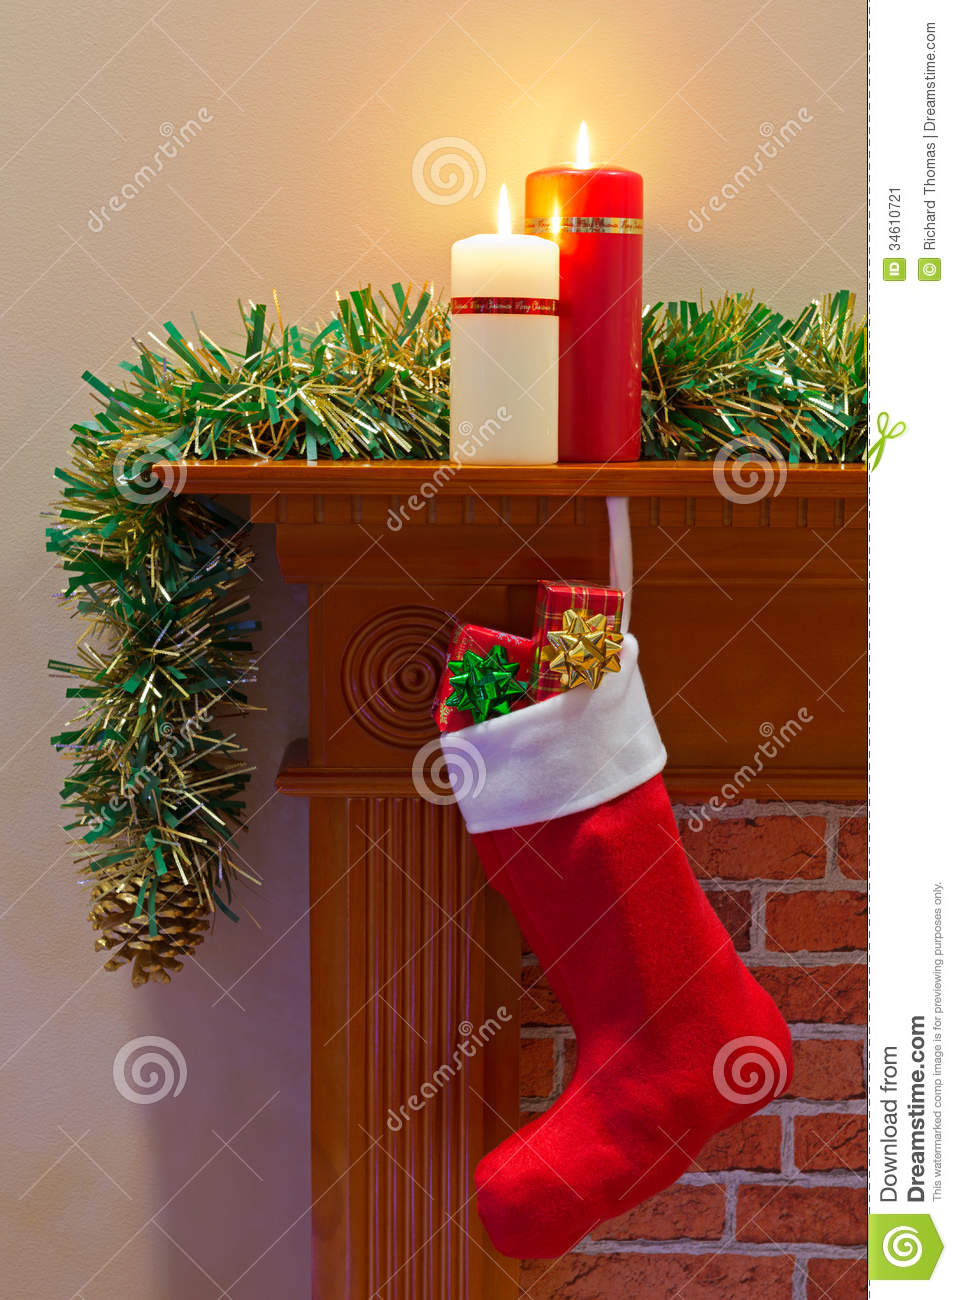 Christmas Stocking Full Of Presents Stock Image Image